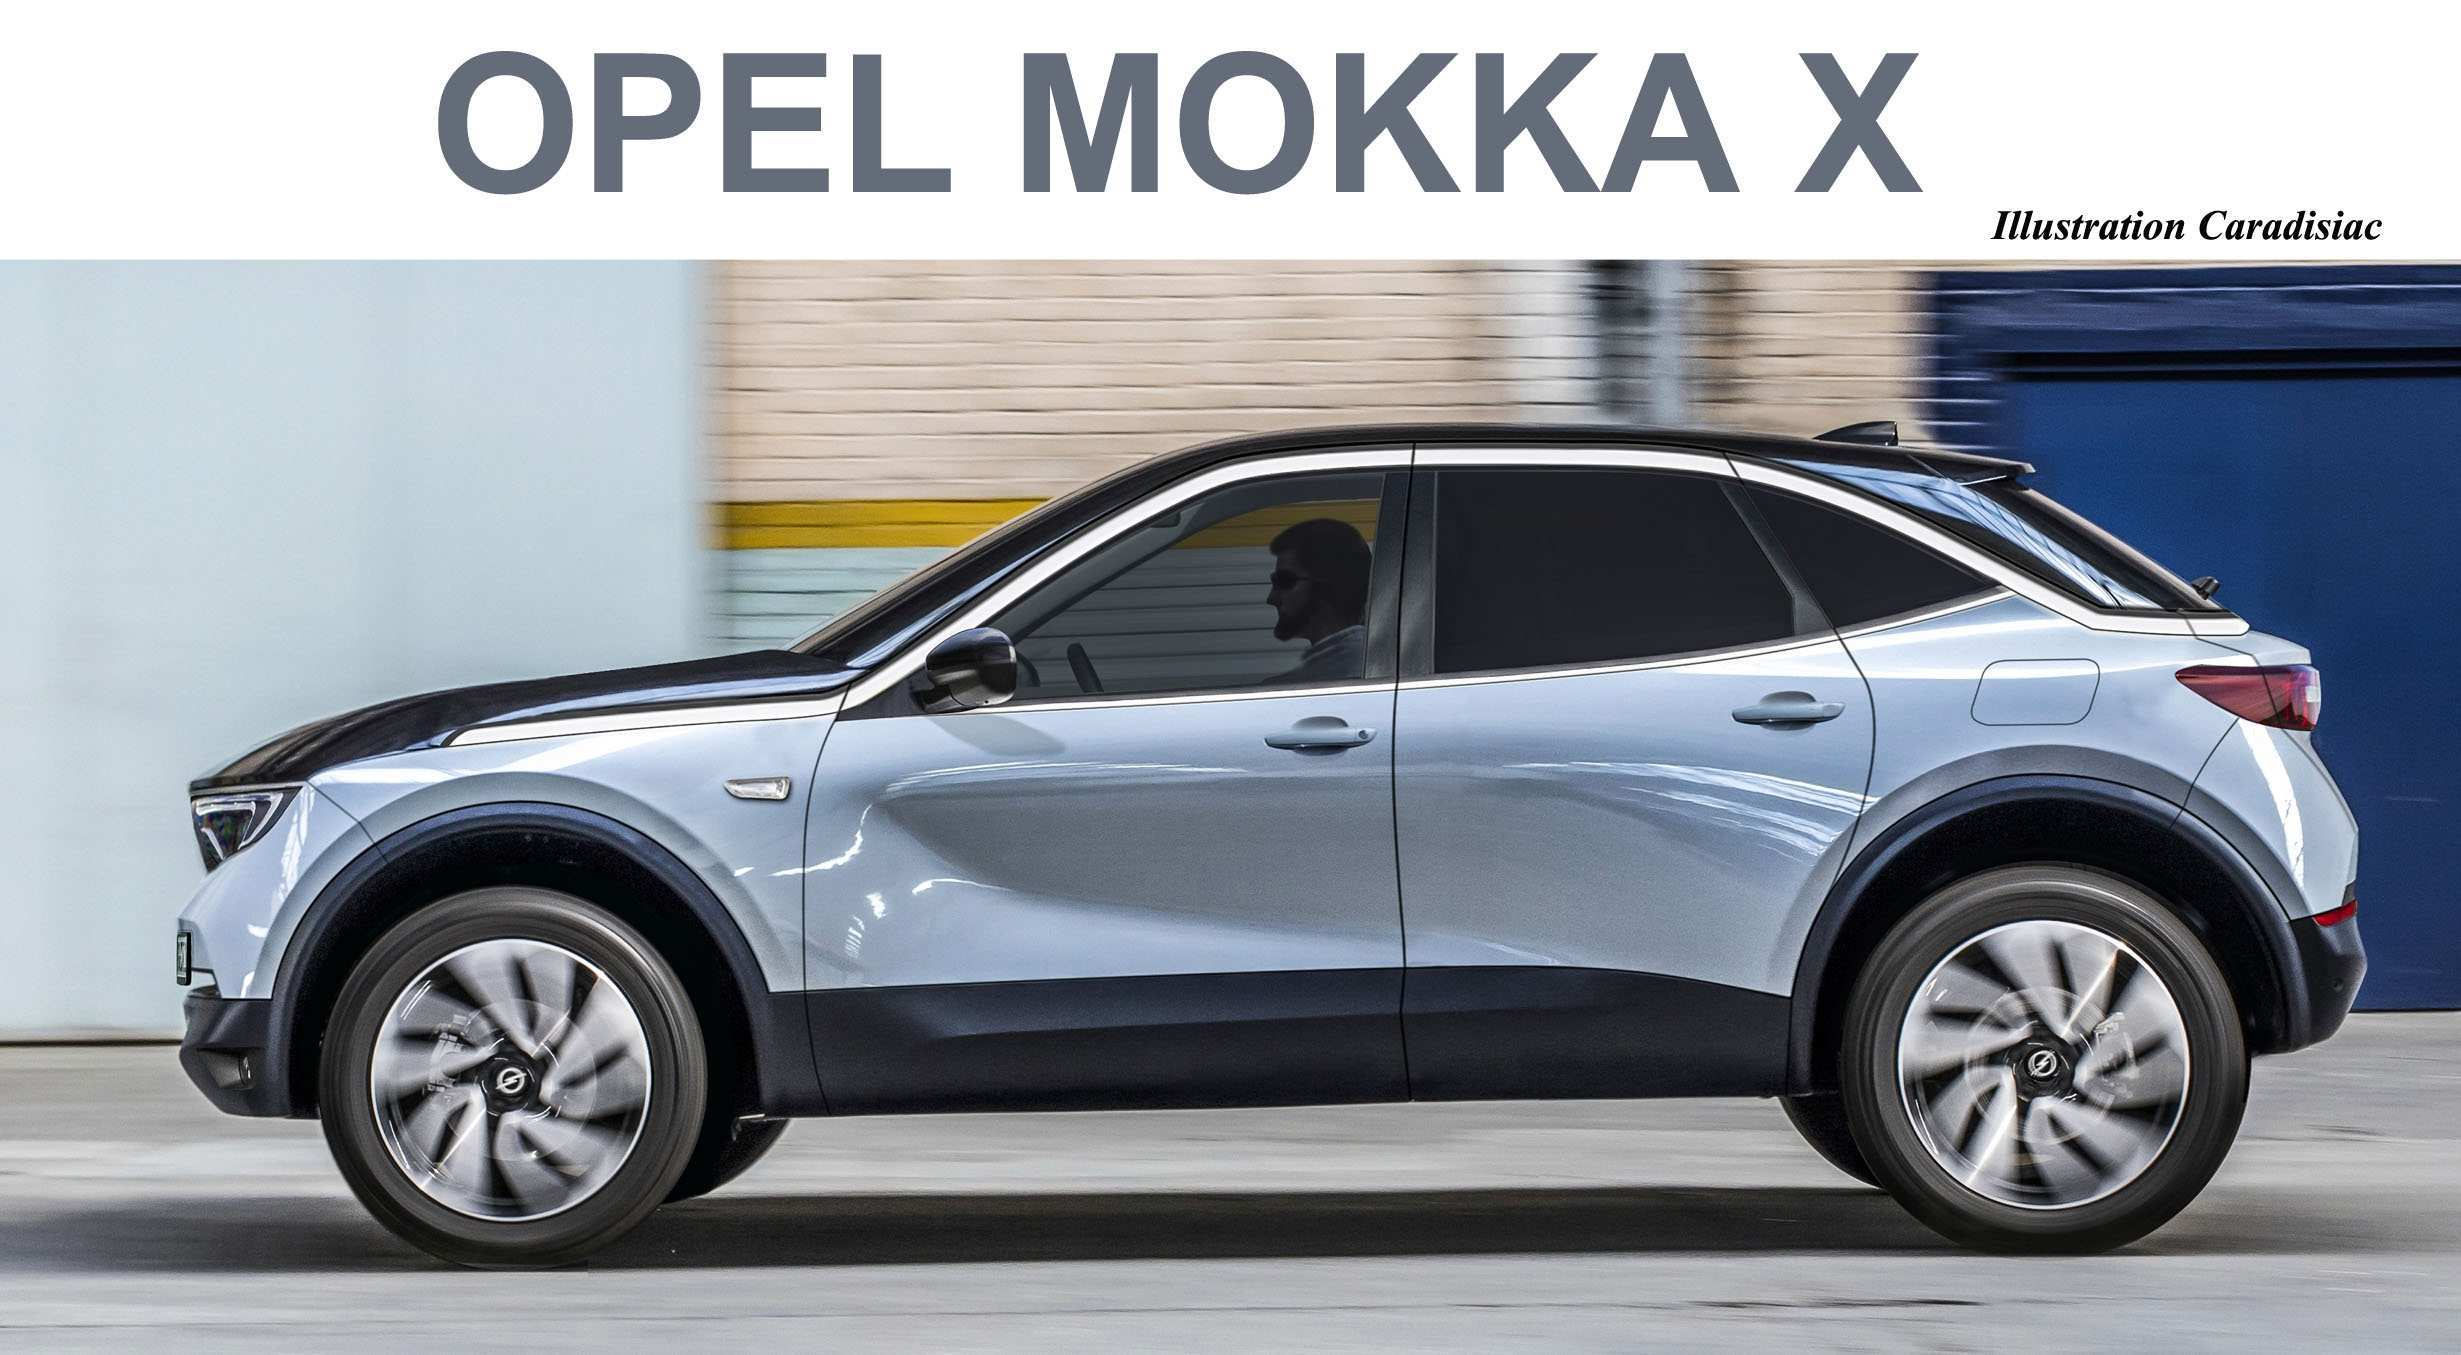 59 The Best Der Neue Opel Mokka X 2020 Style